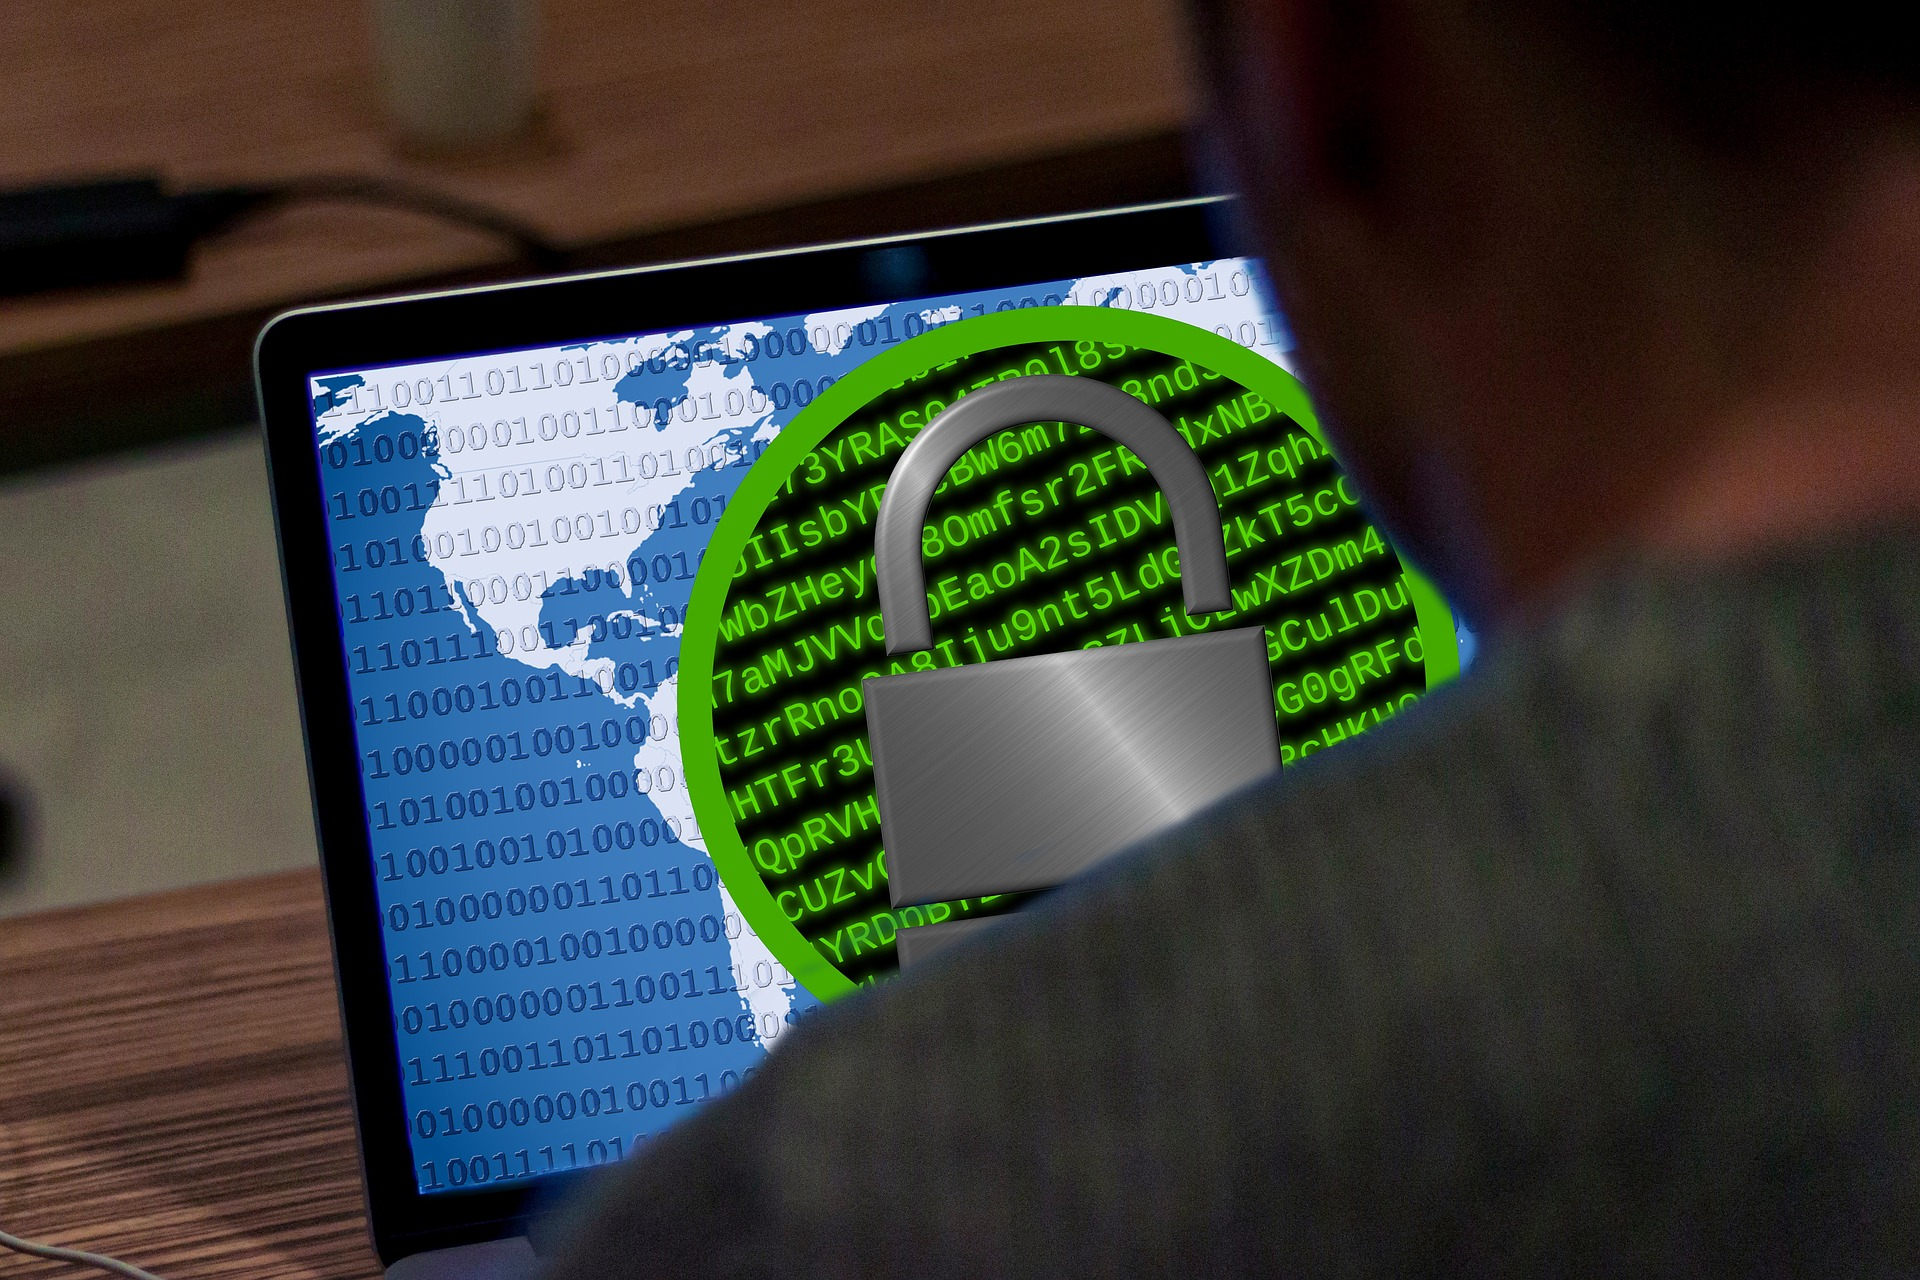 Yes, you can protect your company against ransomware